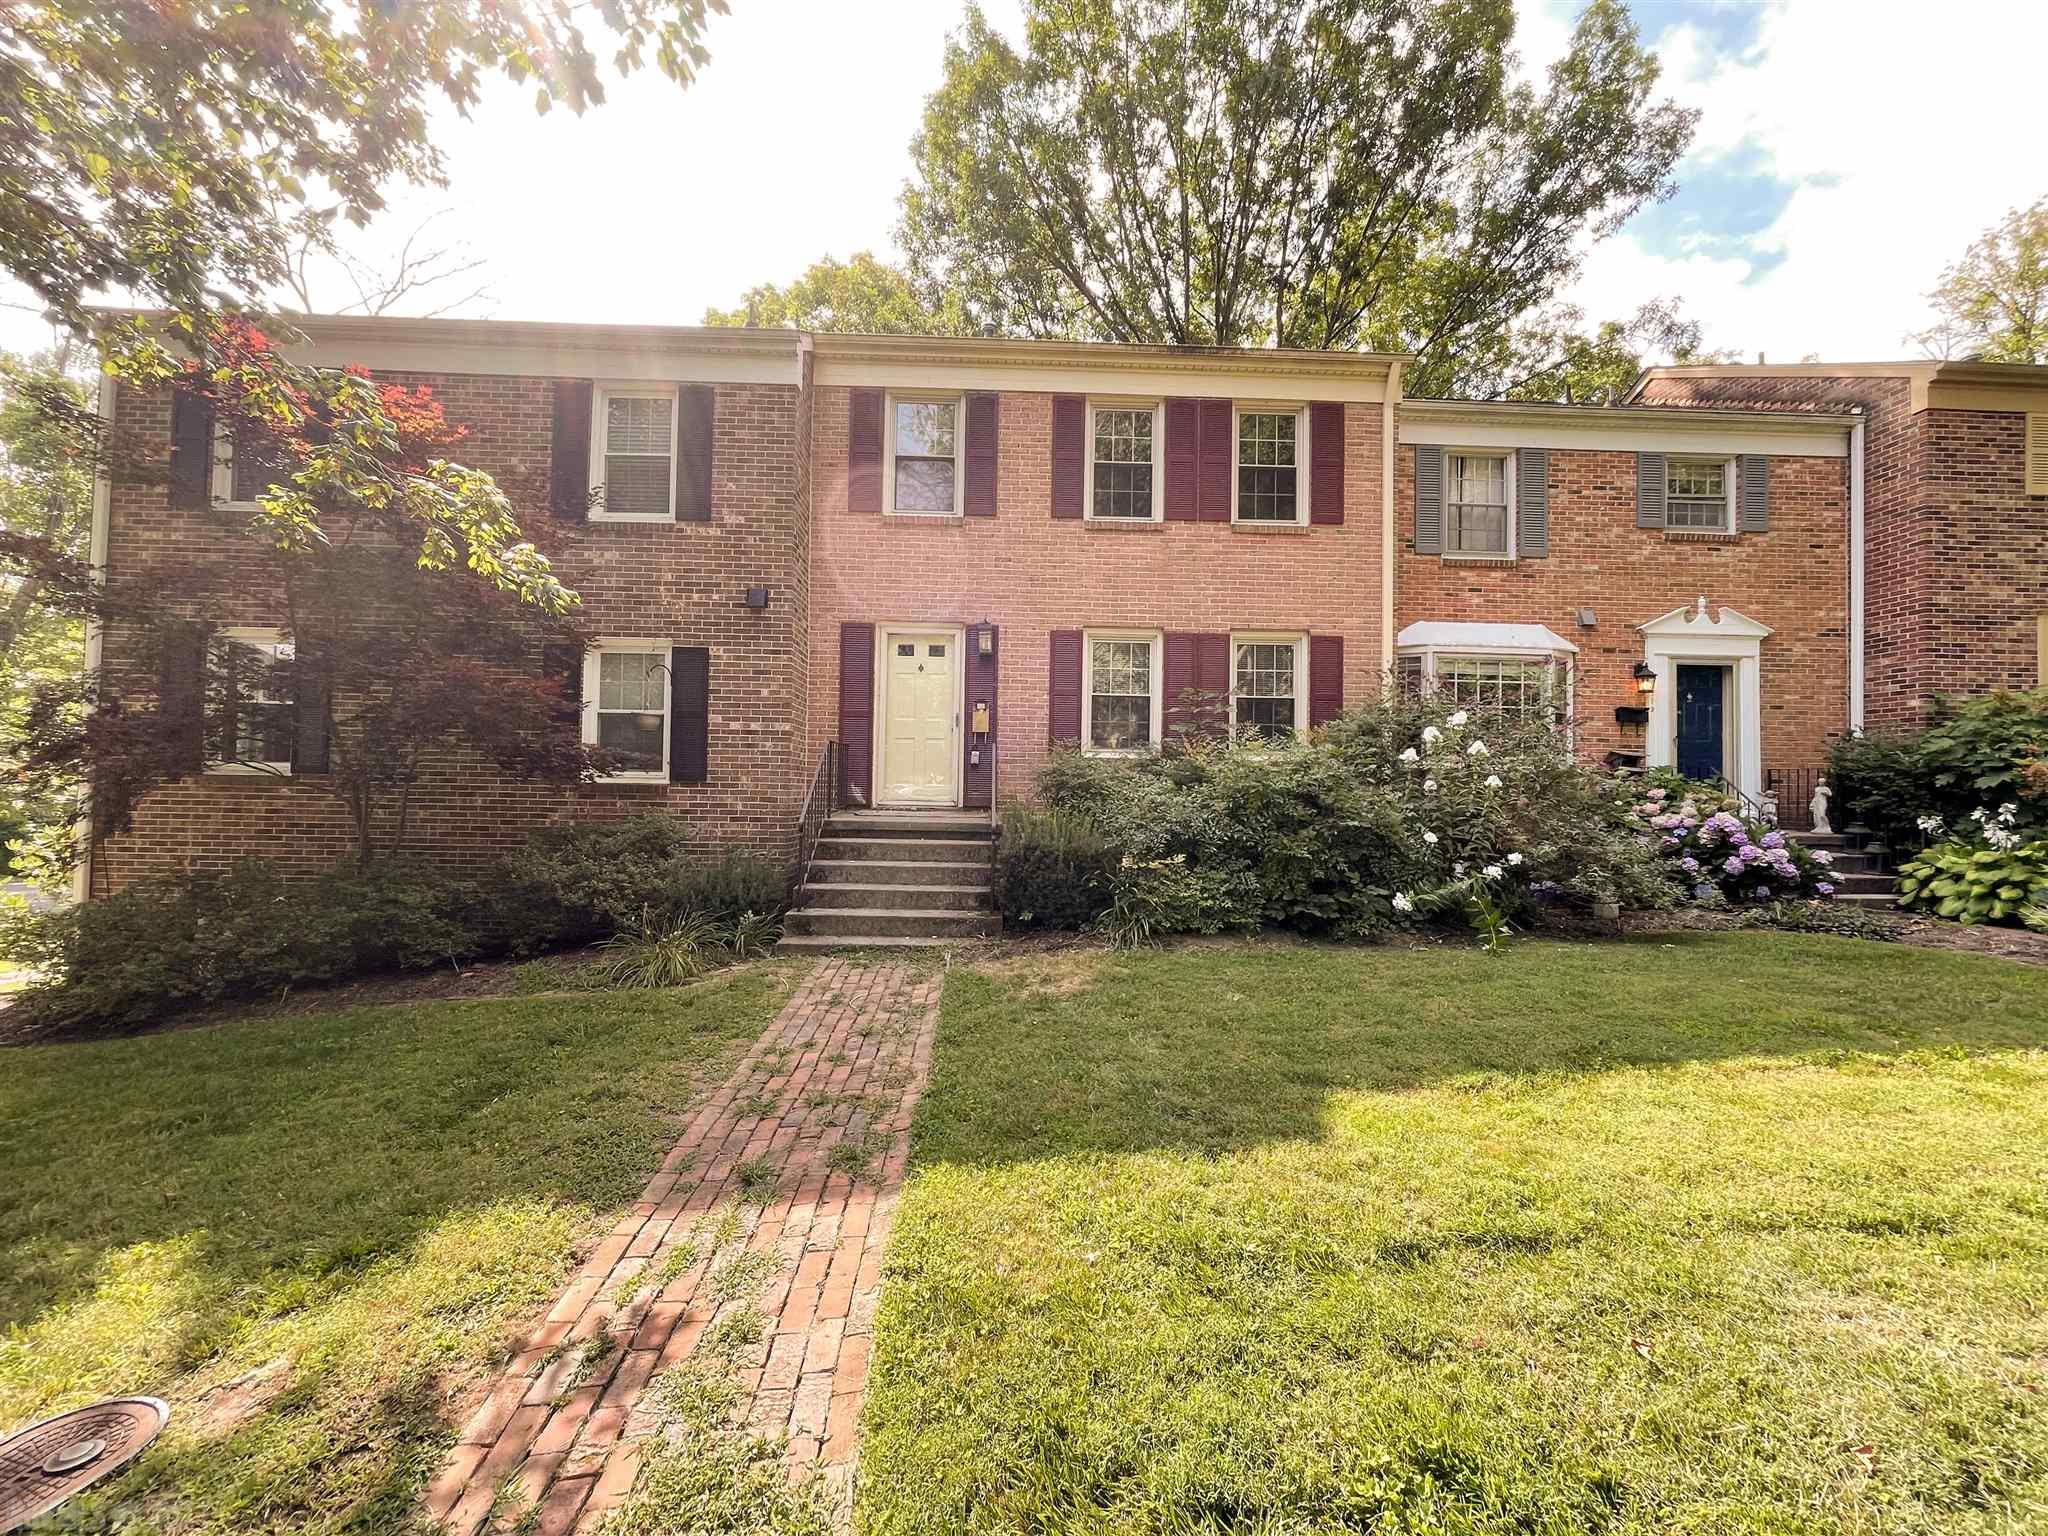 Wonderful investment townhome ready for new owners and tenants. Right next door to elementary, middle, and high school. It has three bedrooms on the upper level with two living spaces on the main and basement level with full baths. Open kitchen to dining room with a half bath located on the main. Walk to grocery store and the BT bus stop for Virginia Tech, Corporate Research Center, VCOM and downtown Blacksburg. Wonderful playground community green space for outside adventure plus a fenced backyard patio area for privacy. New paint and replacement windows.